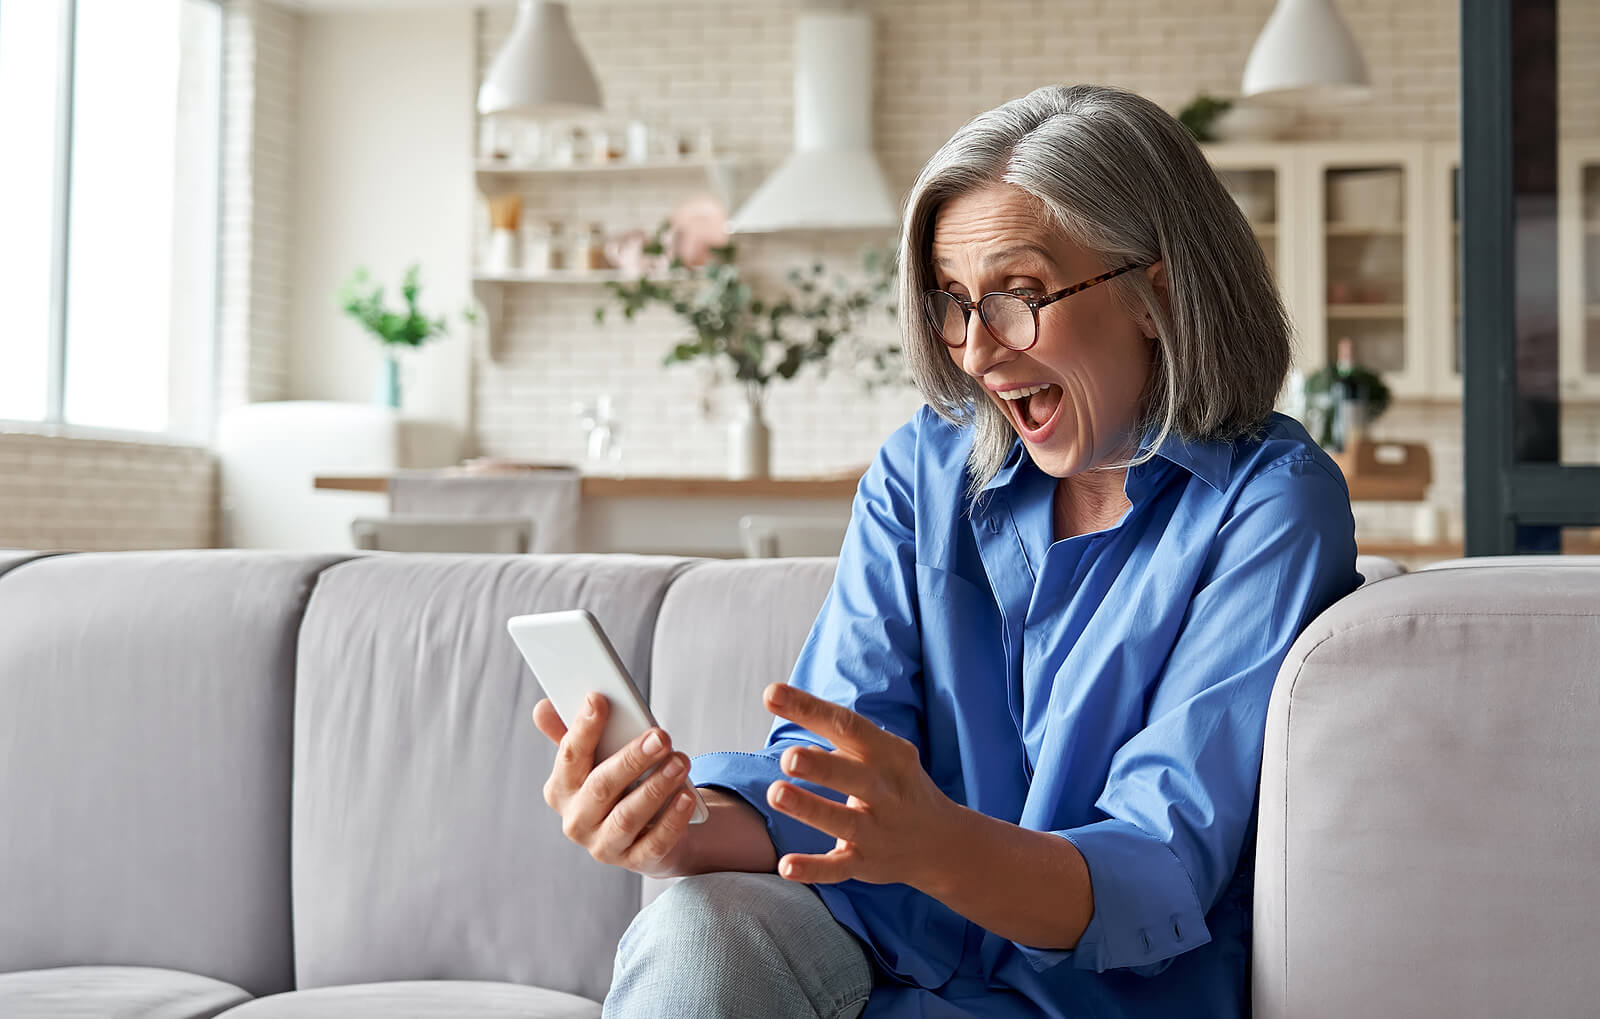 A happy mature woman with grey hair holding a mobile phone she has been gifted, sat on a sofa